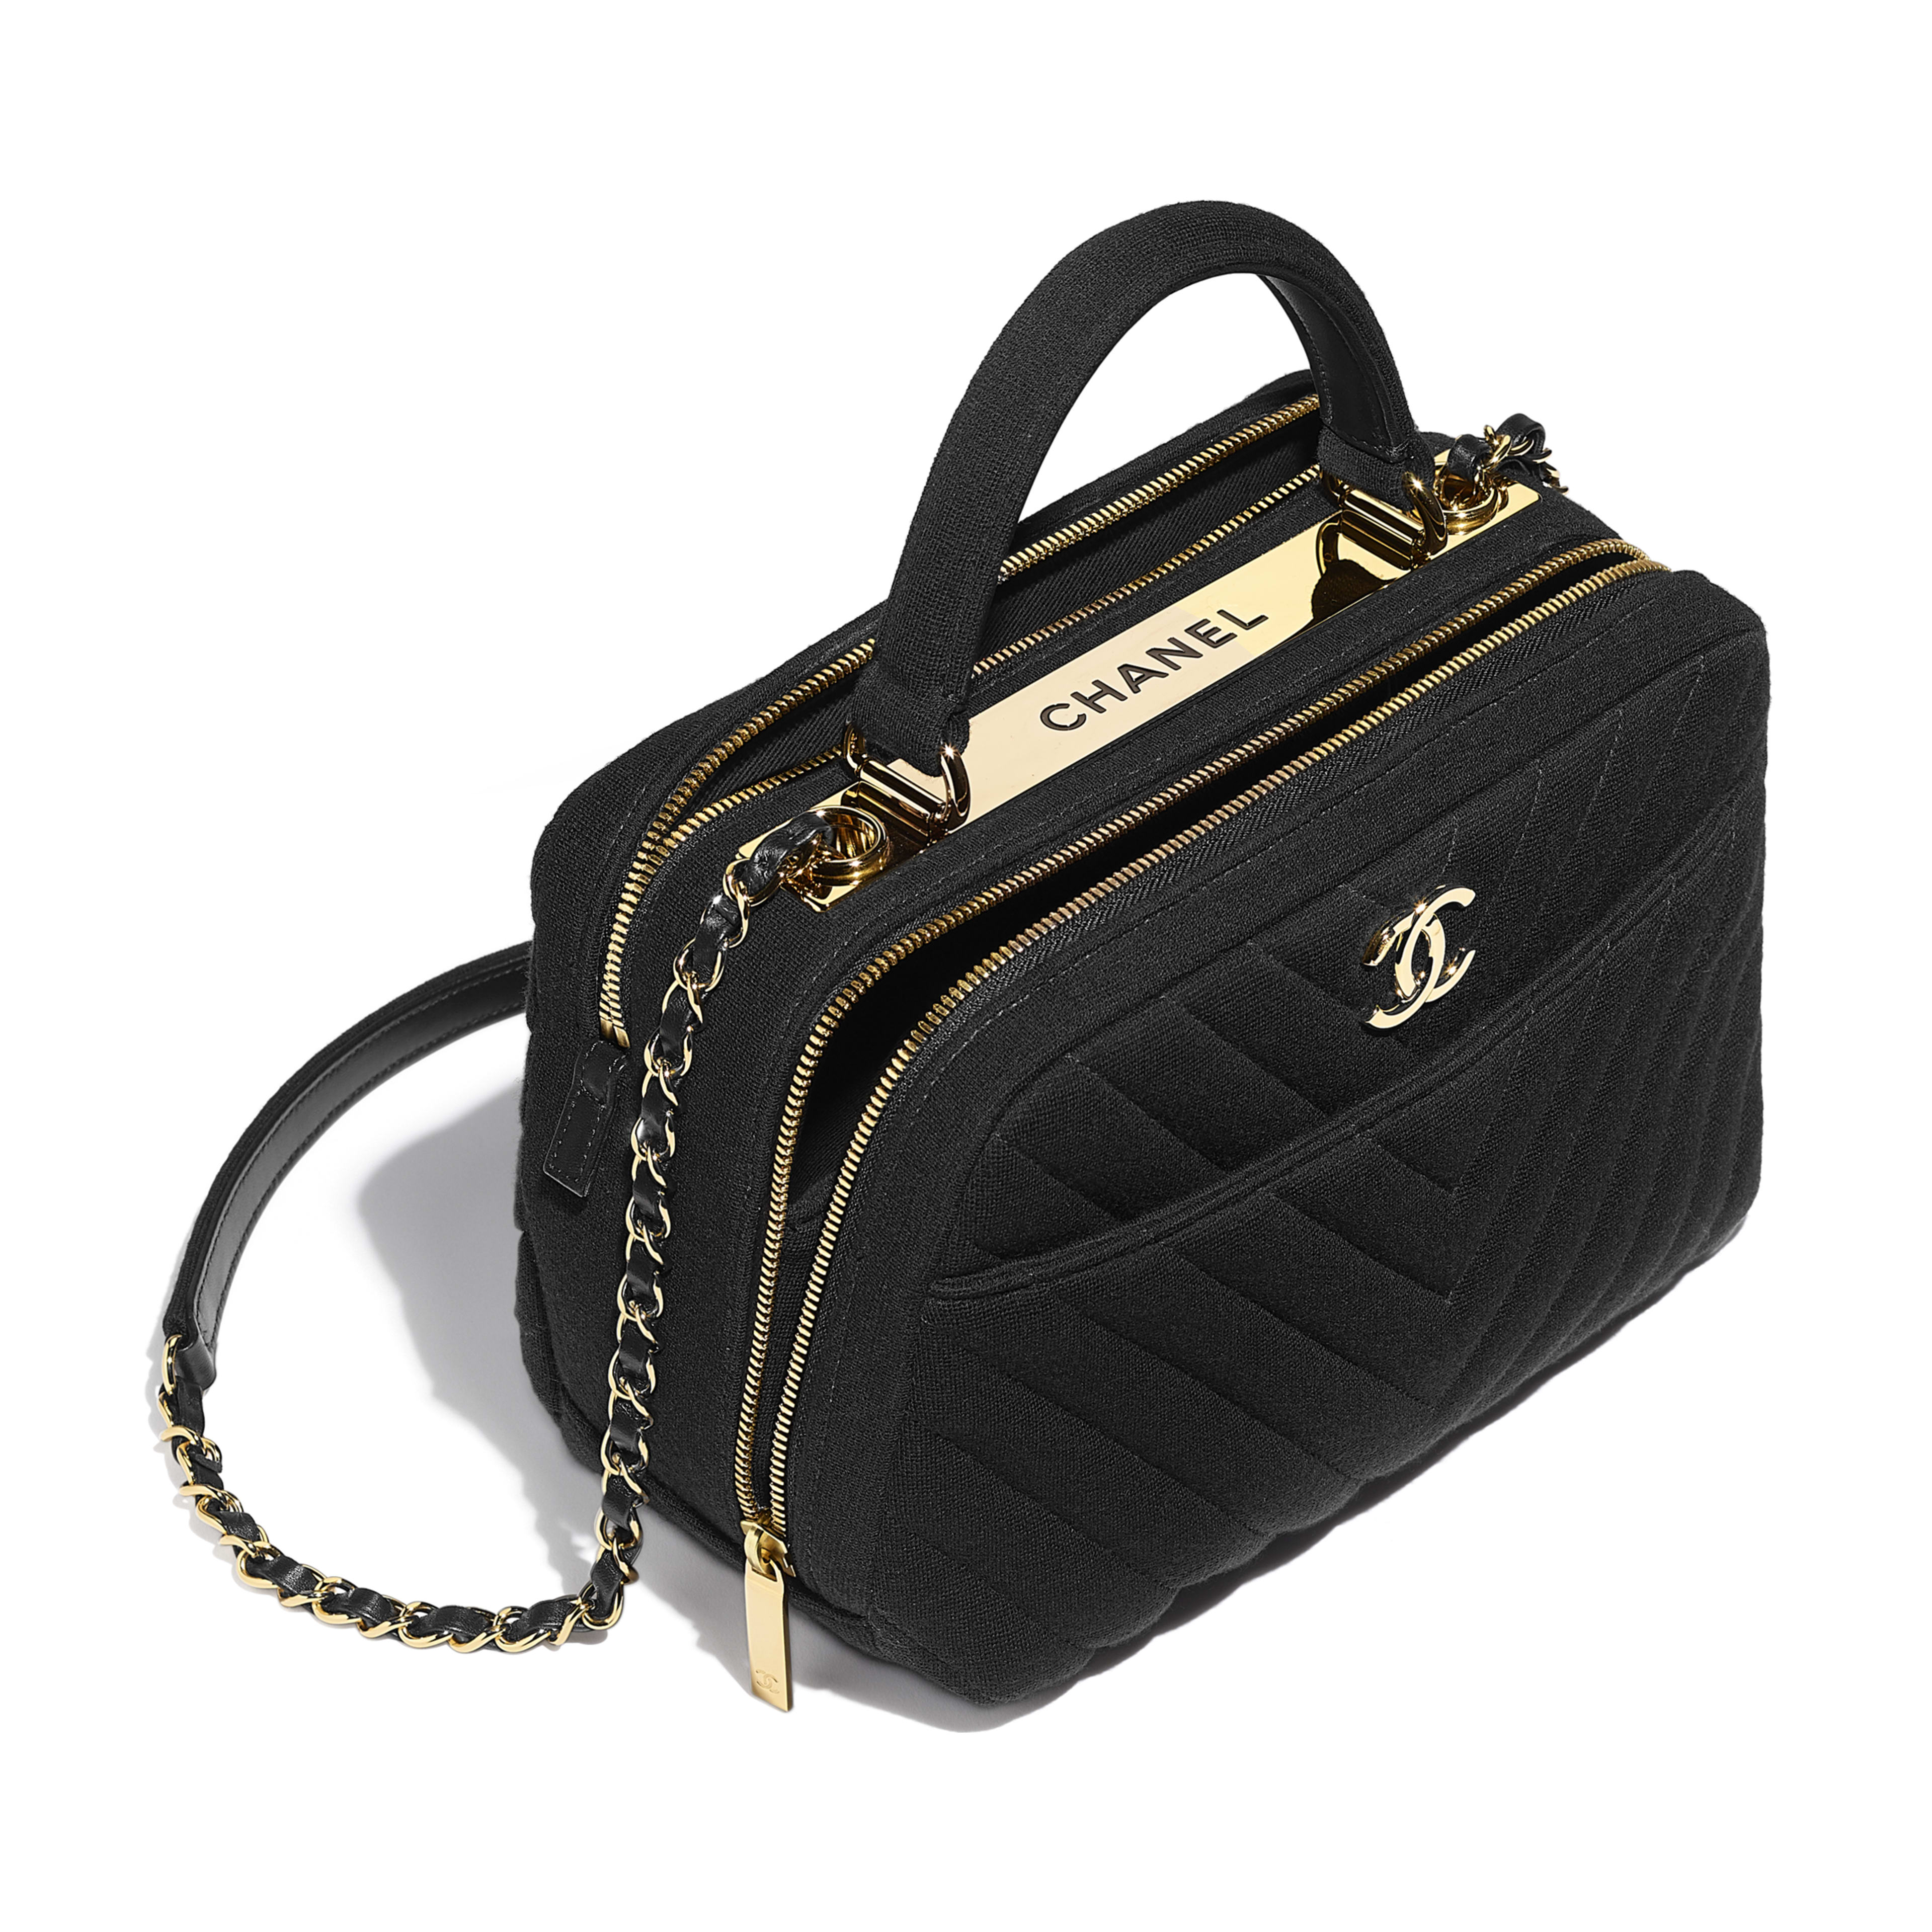 Bowling Bag - Black - Jersey   Gold-Tone Metal - Other view - see ... 918137796d